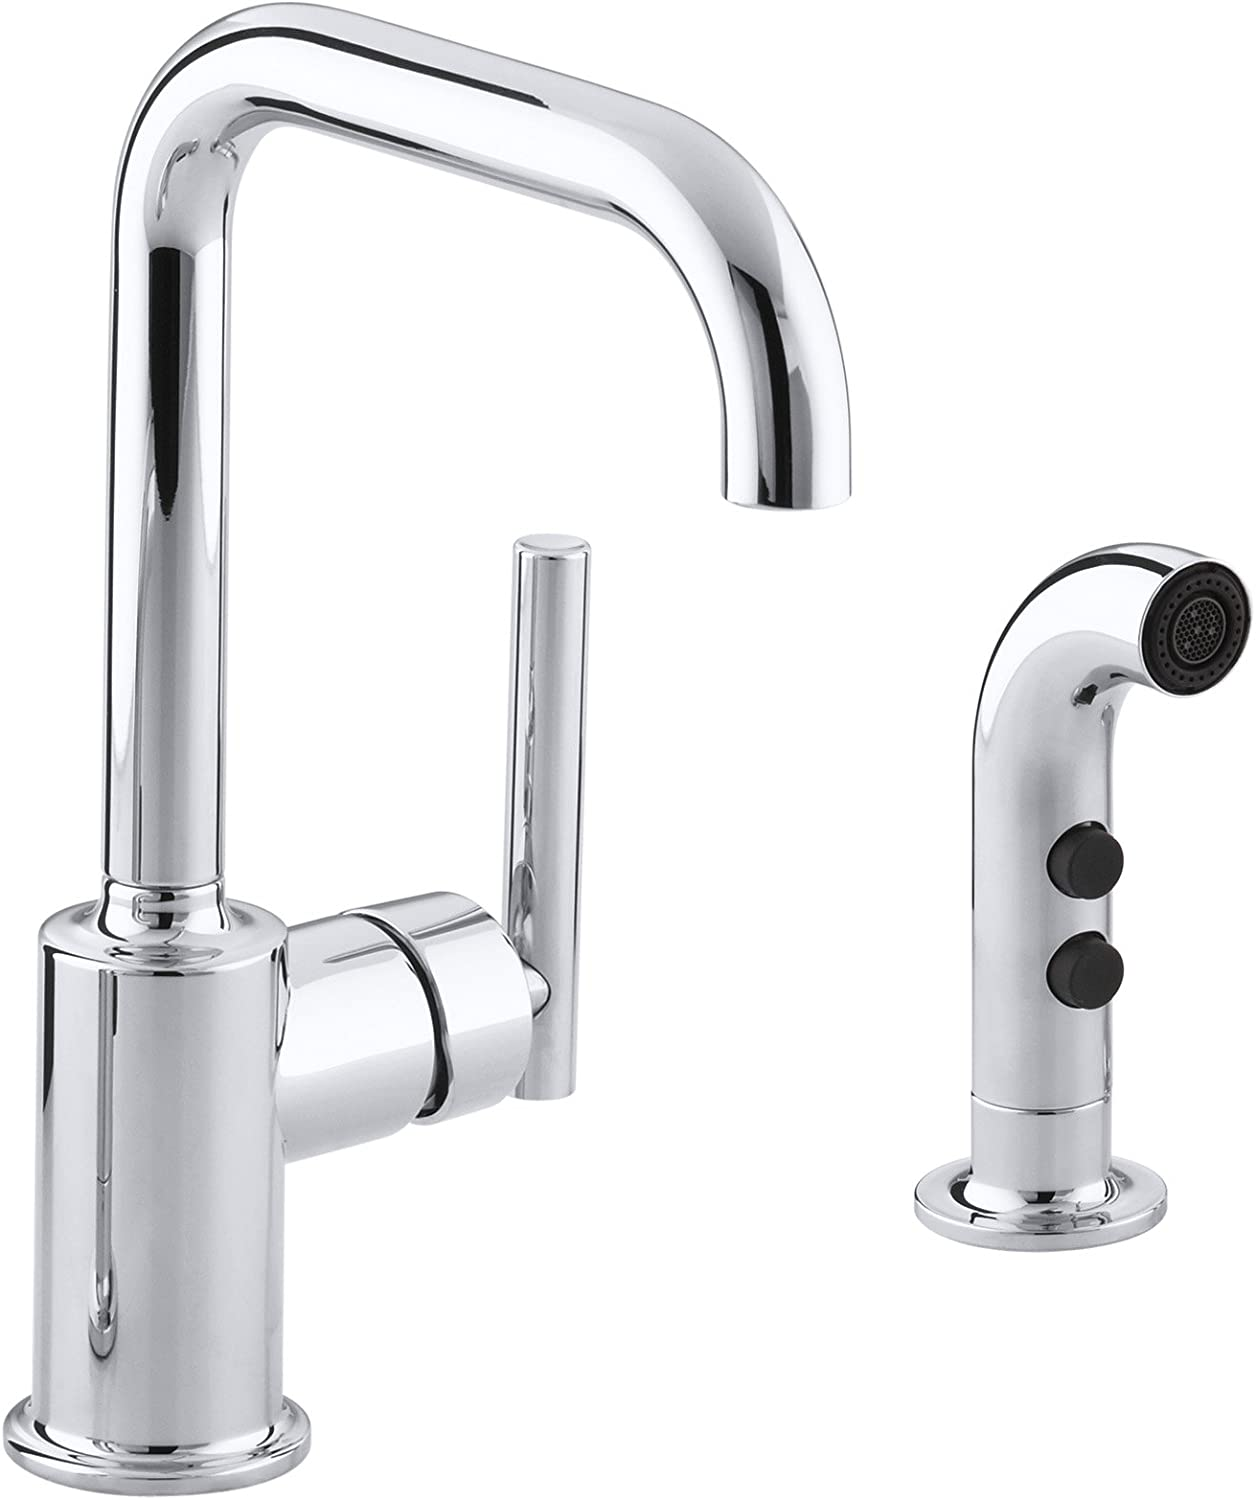 Polished Chrome KOHLER K-7511-CP Purist Secondary Swing Spout with Spray